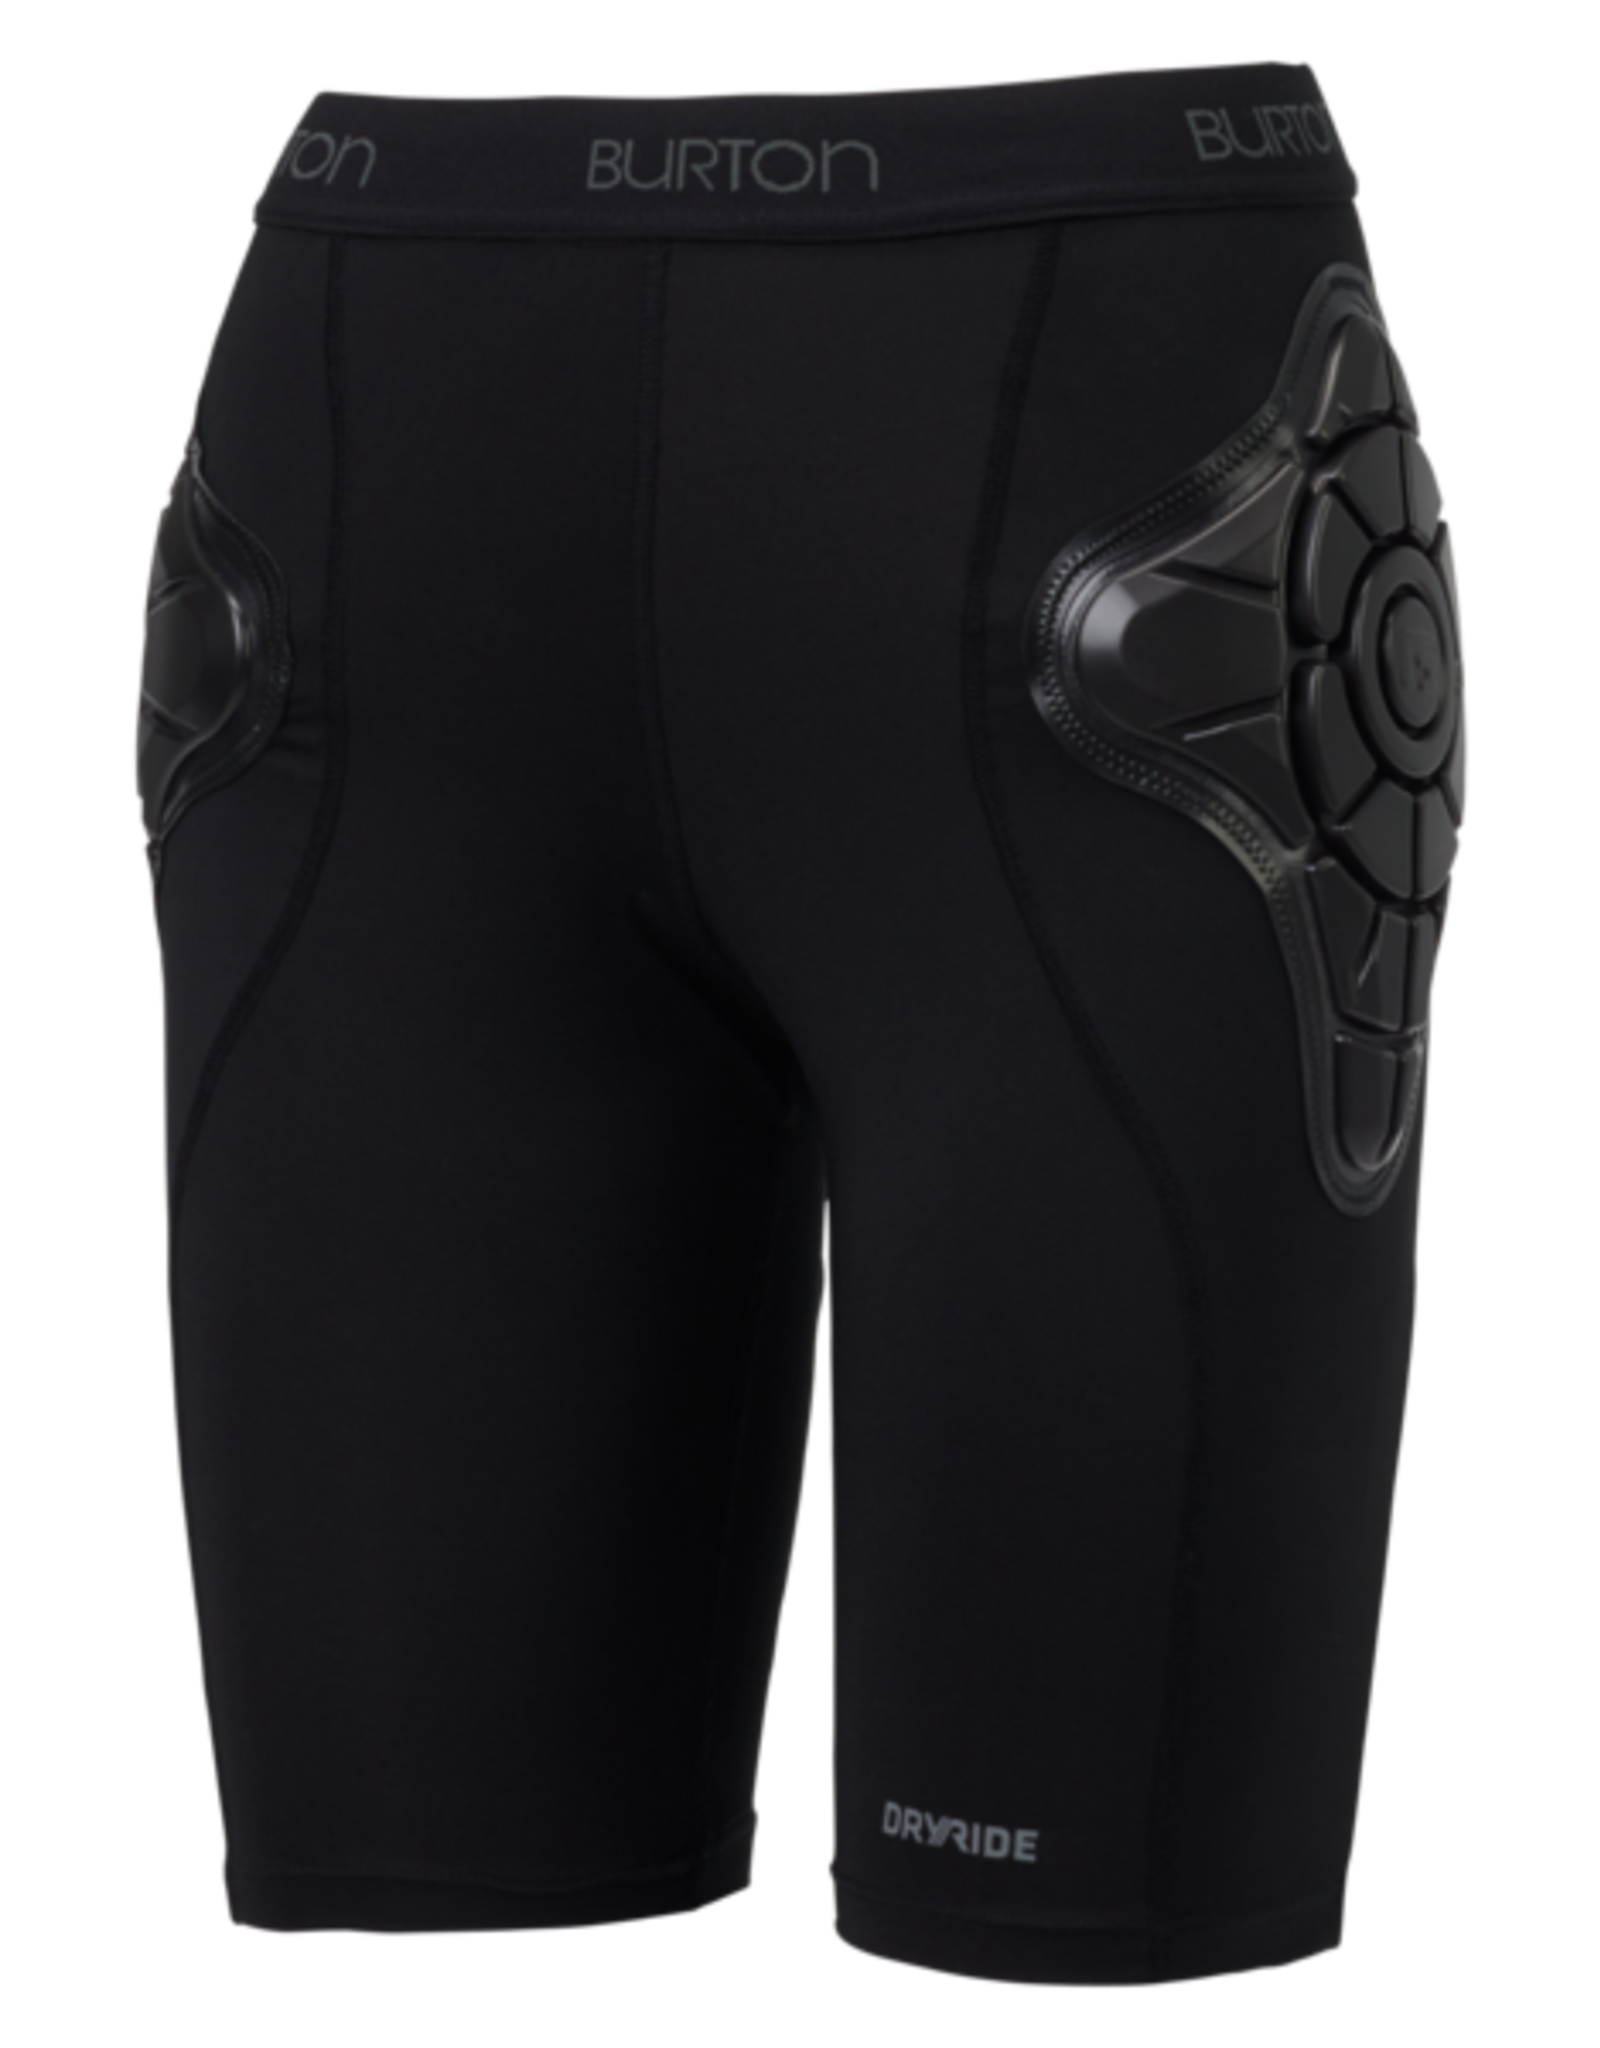 burton Burton - Protection femme total impact short true black